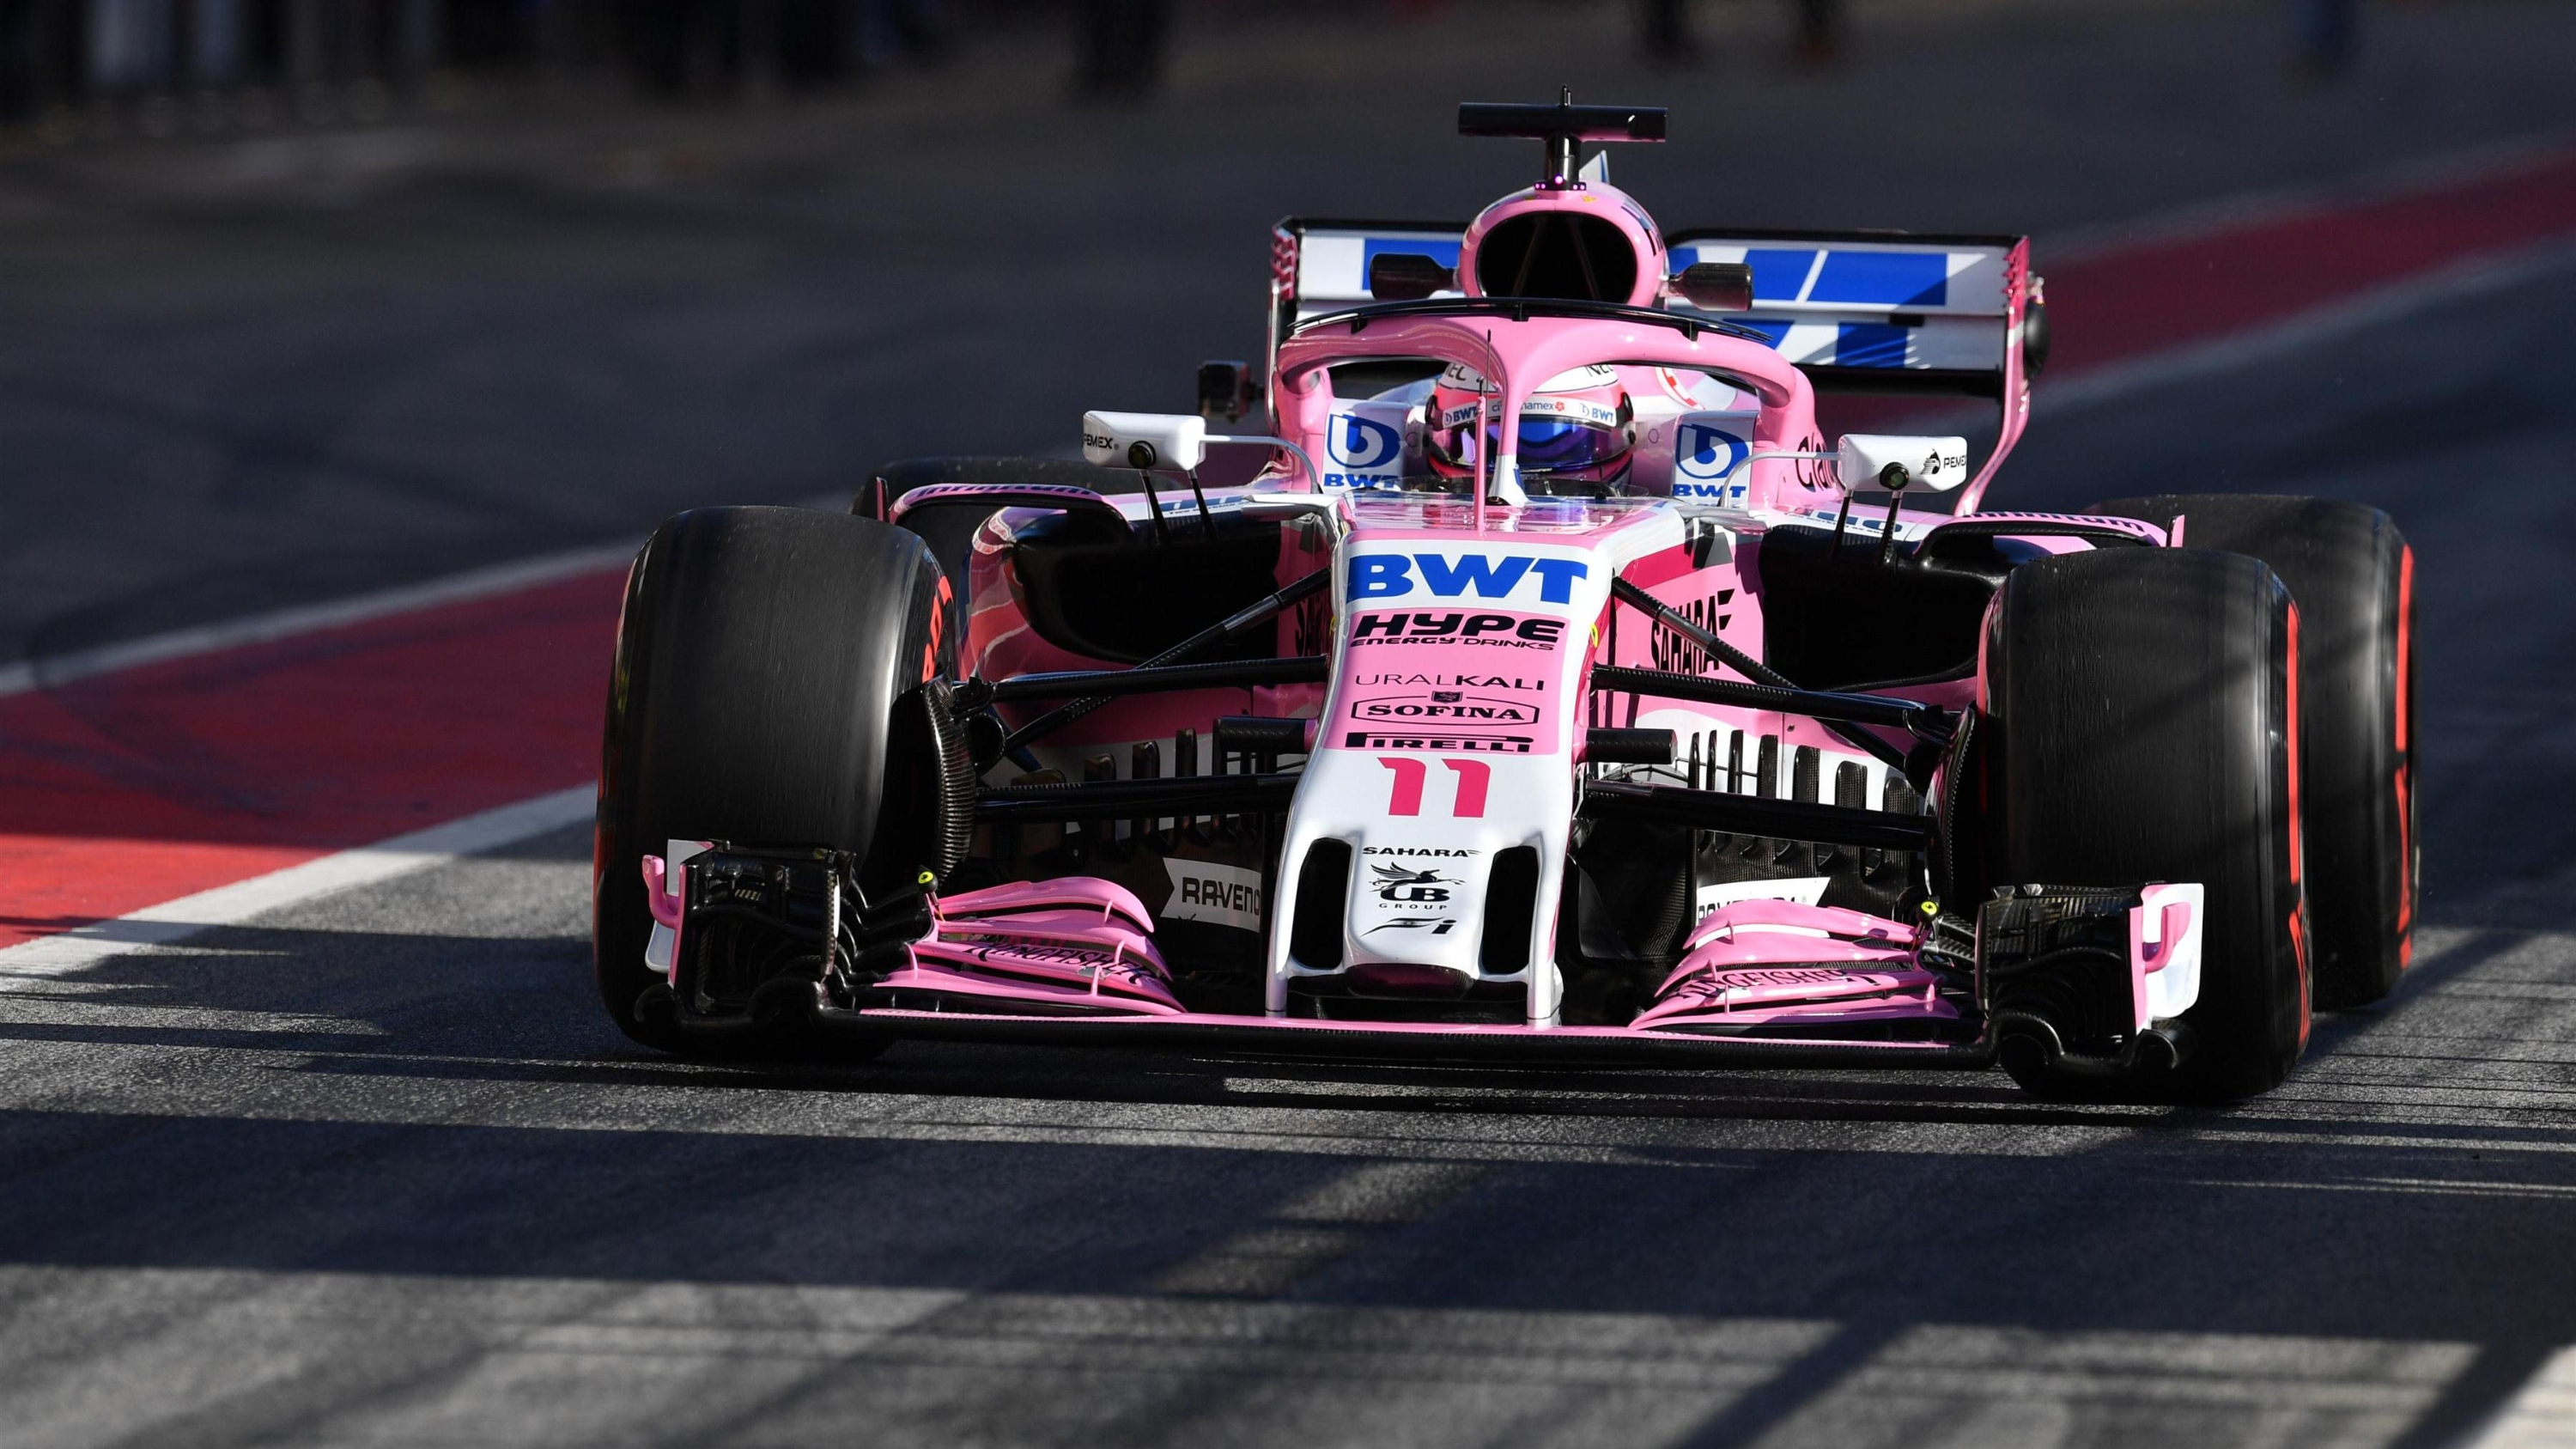 F1 Pre-Season Testing 2018: Tuesday Times and Analysis from Barcelona